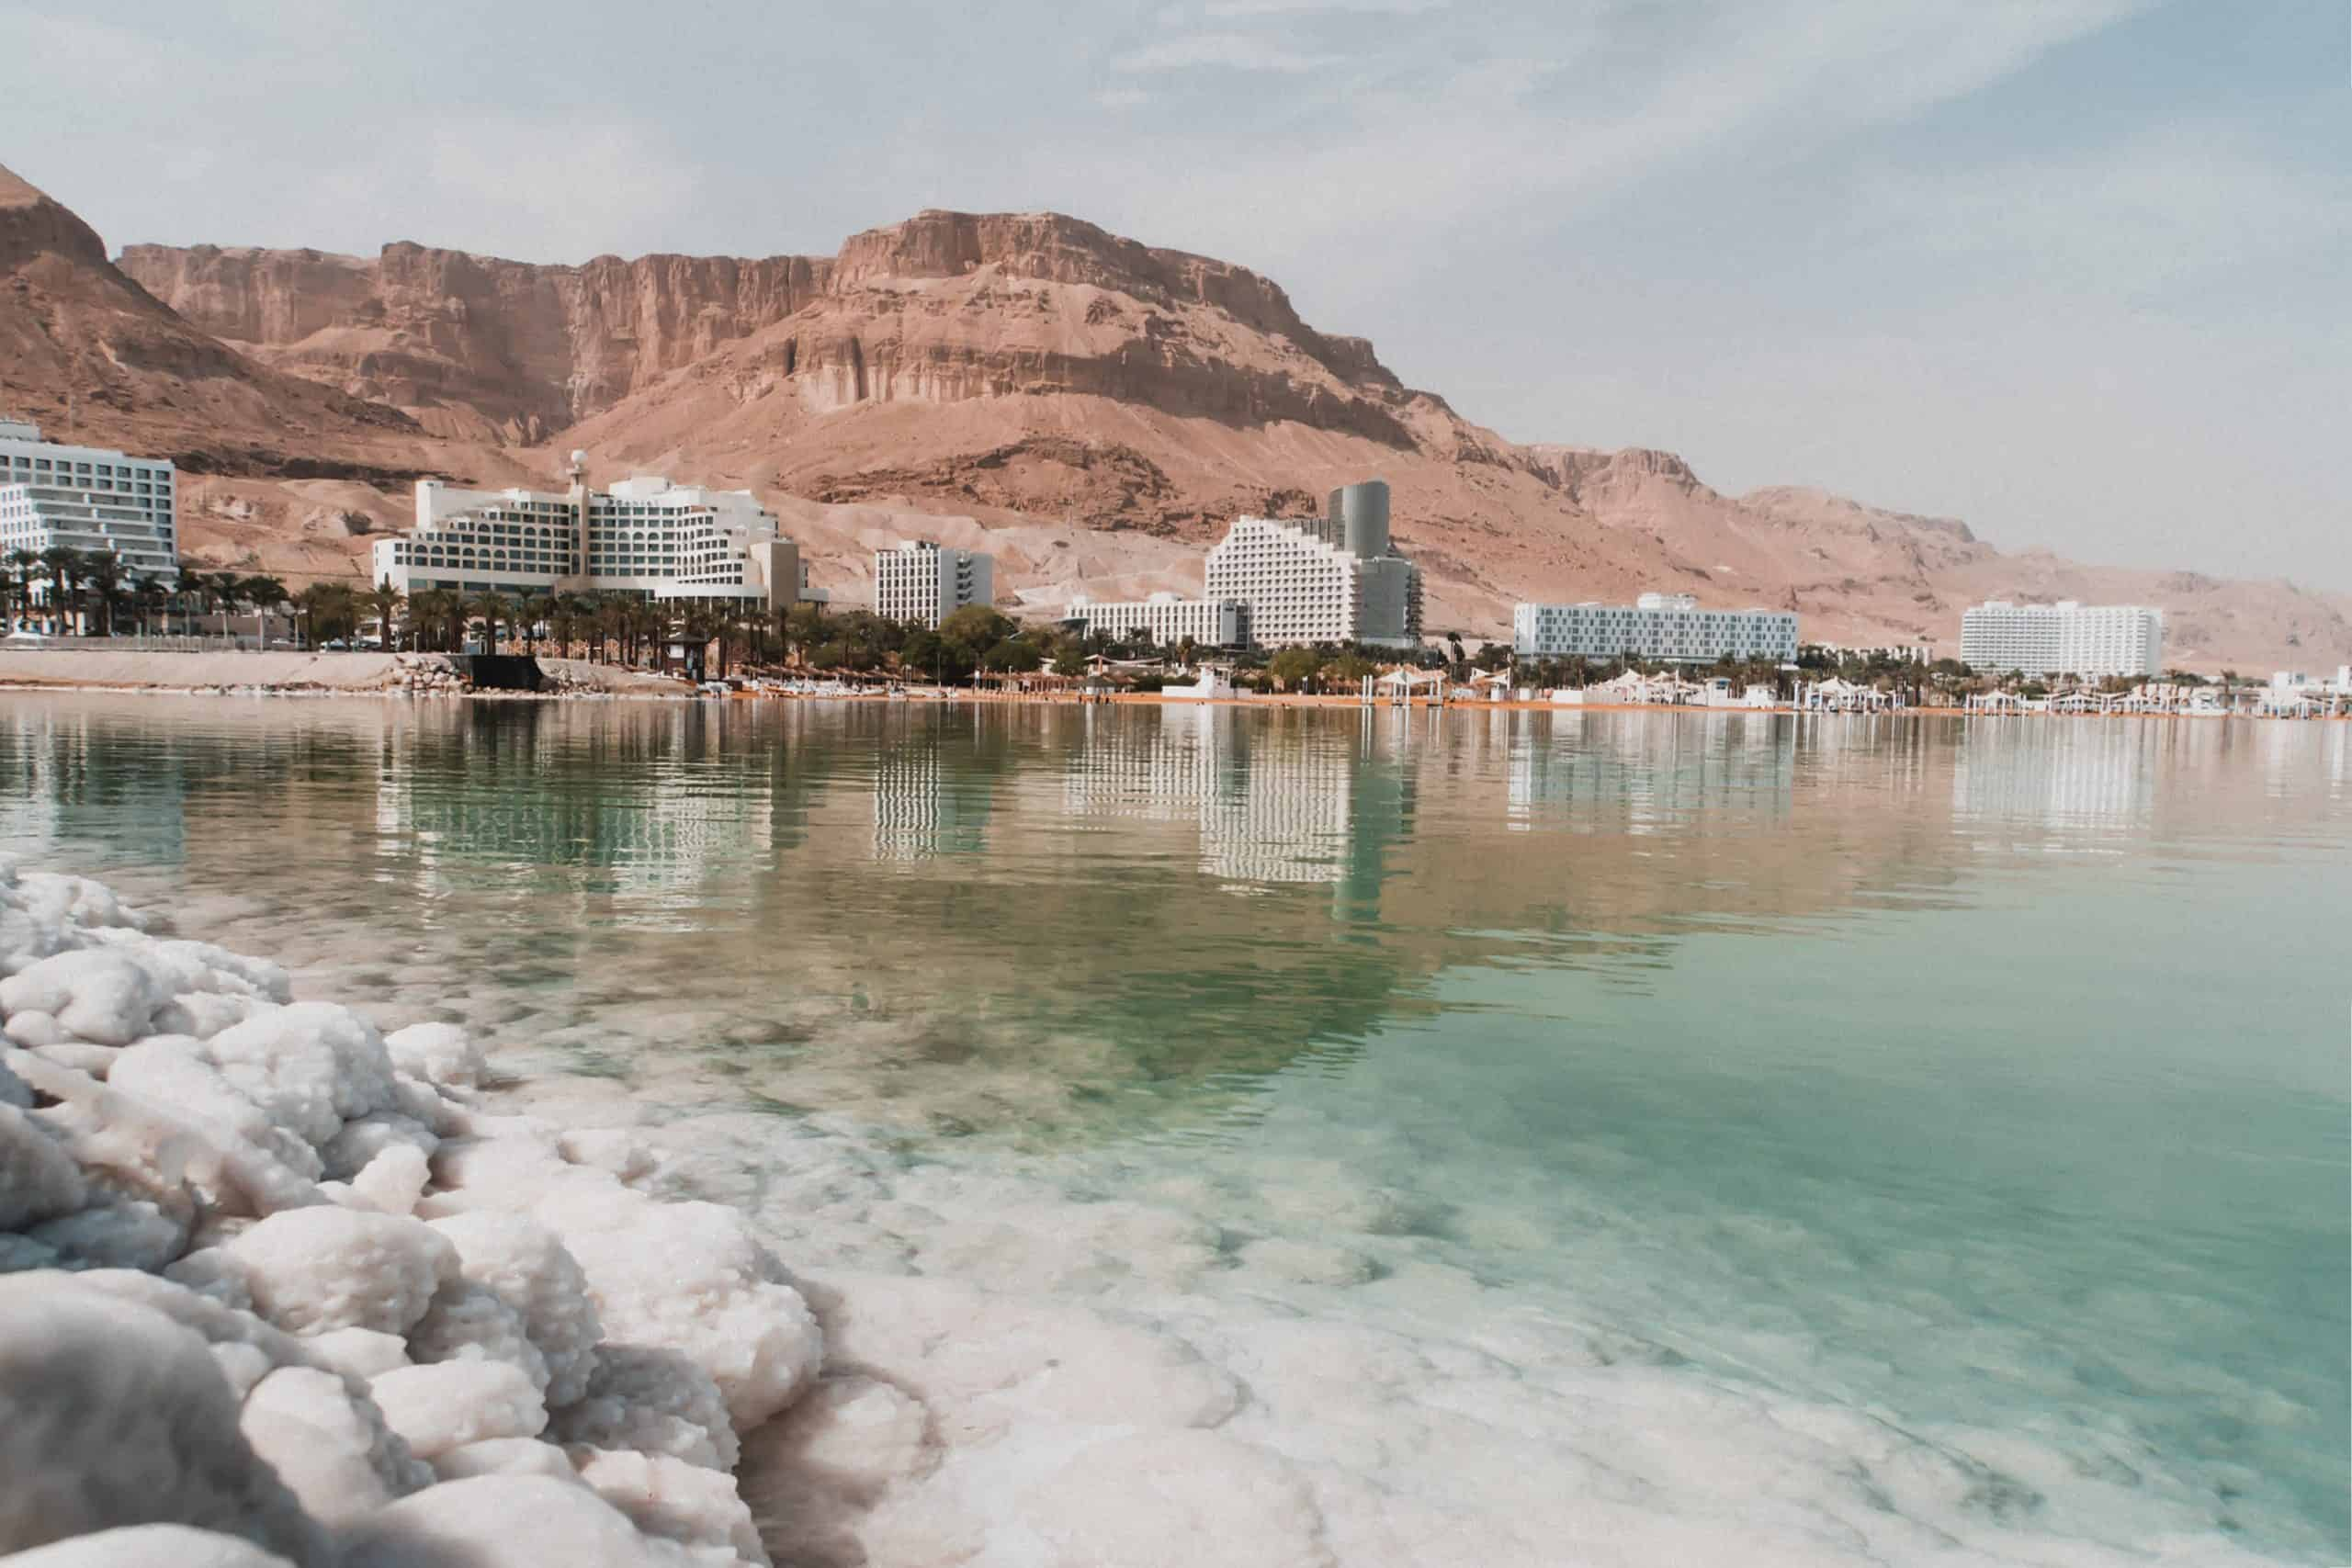 The coast and desert mountains at the Dead Sea, Israel. It is one of the most unique places to visit in Israel